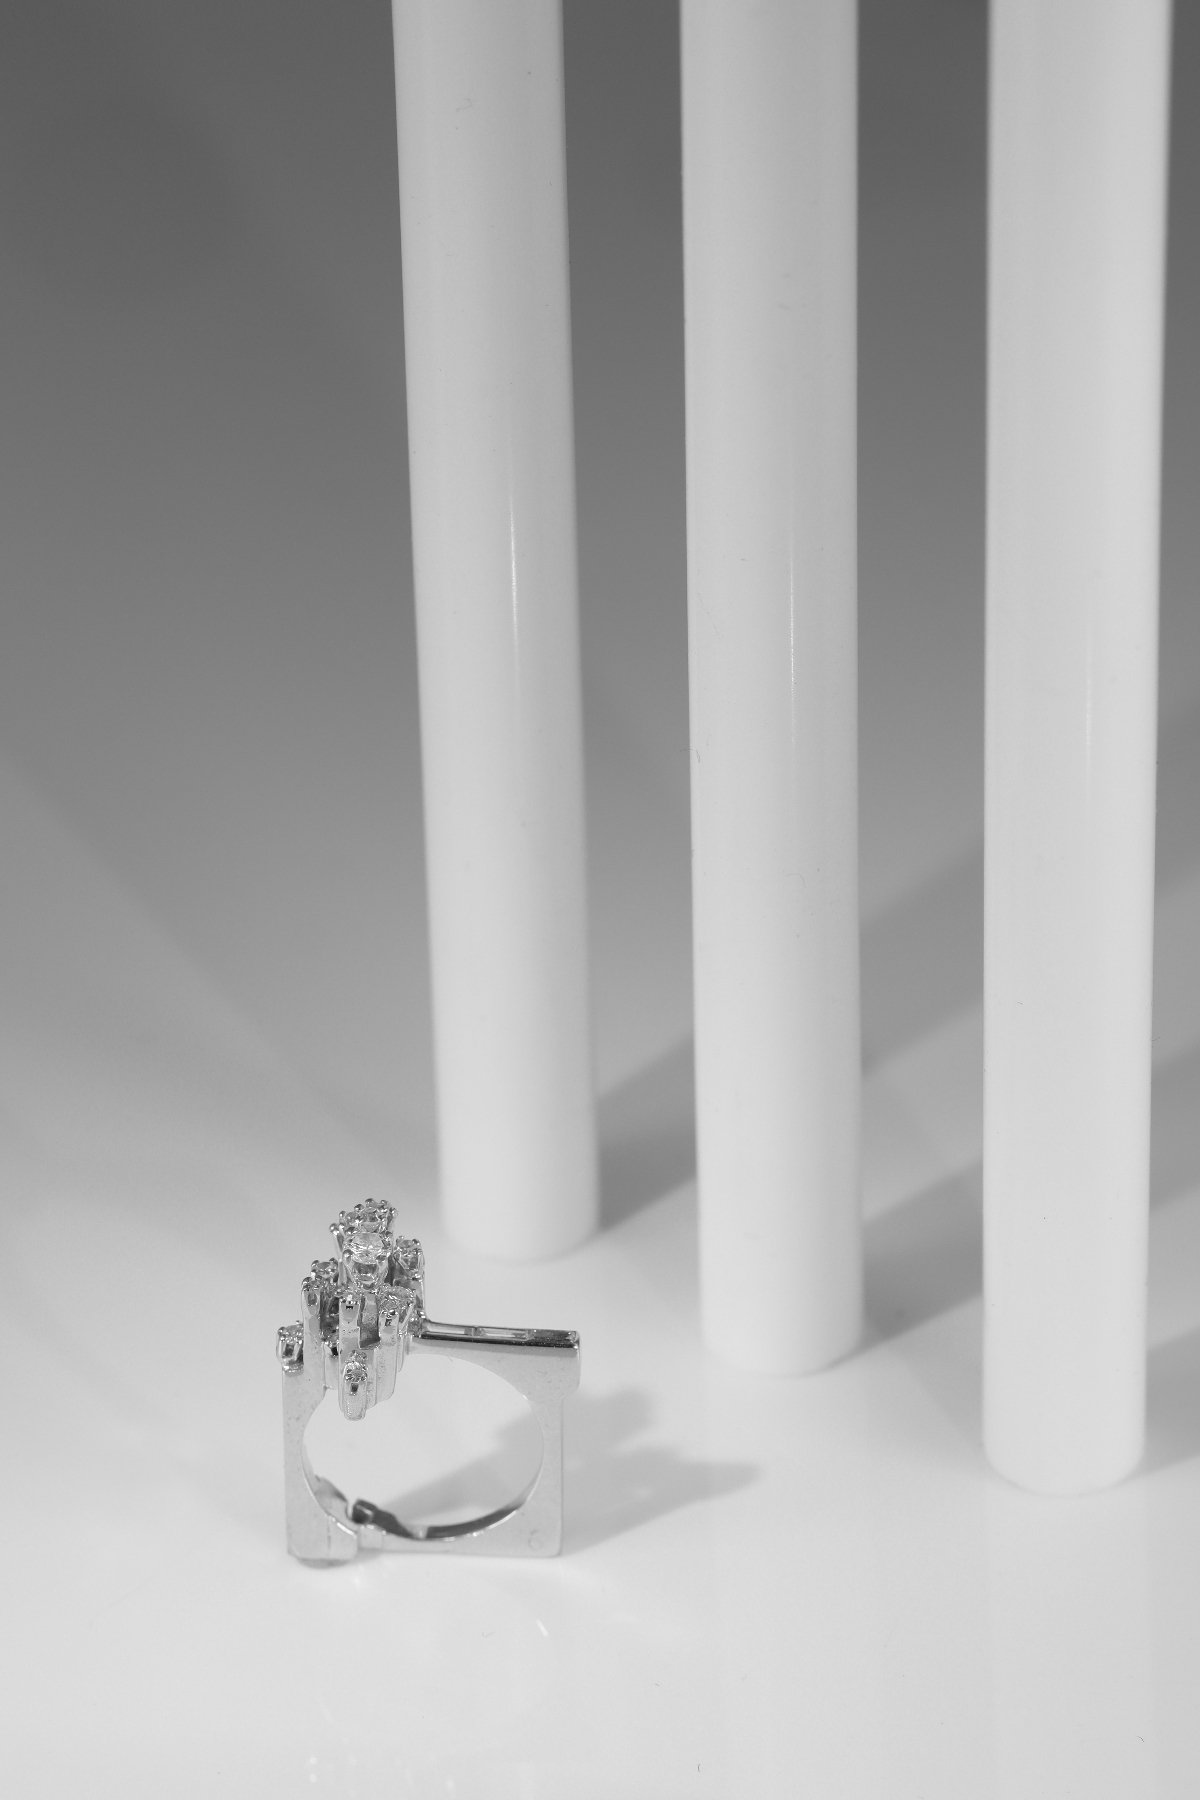 Click the picture to get to see this Vintage Sixties strong design artist jewelry French platinum ring with diamonds.